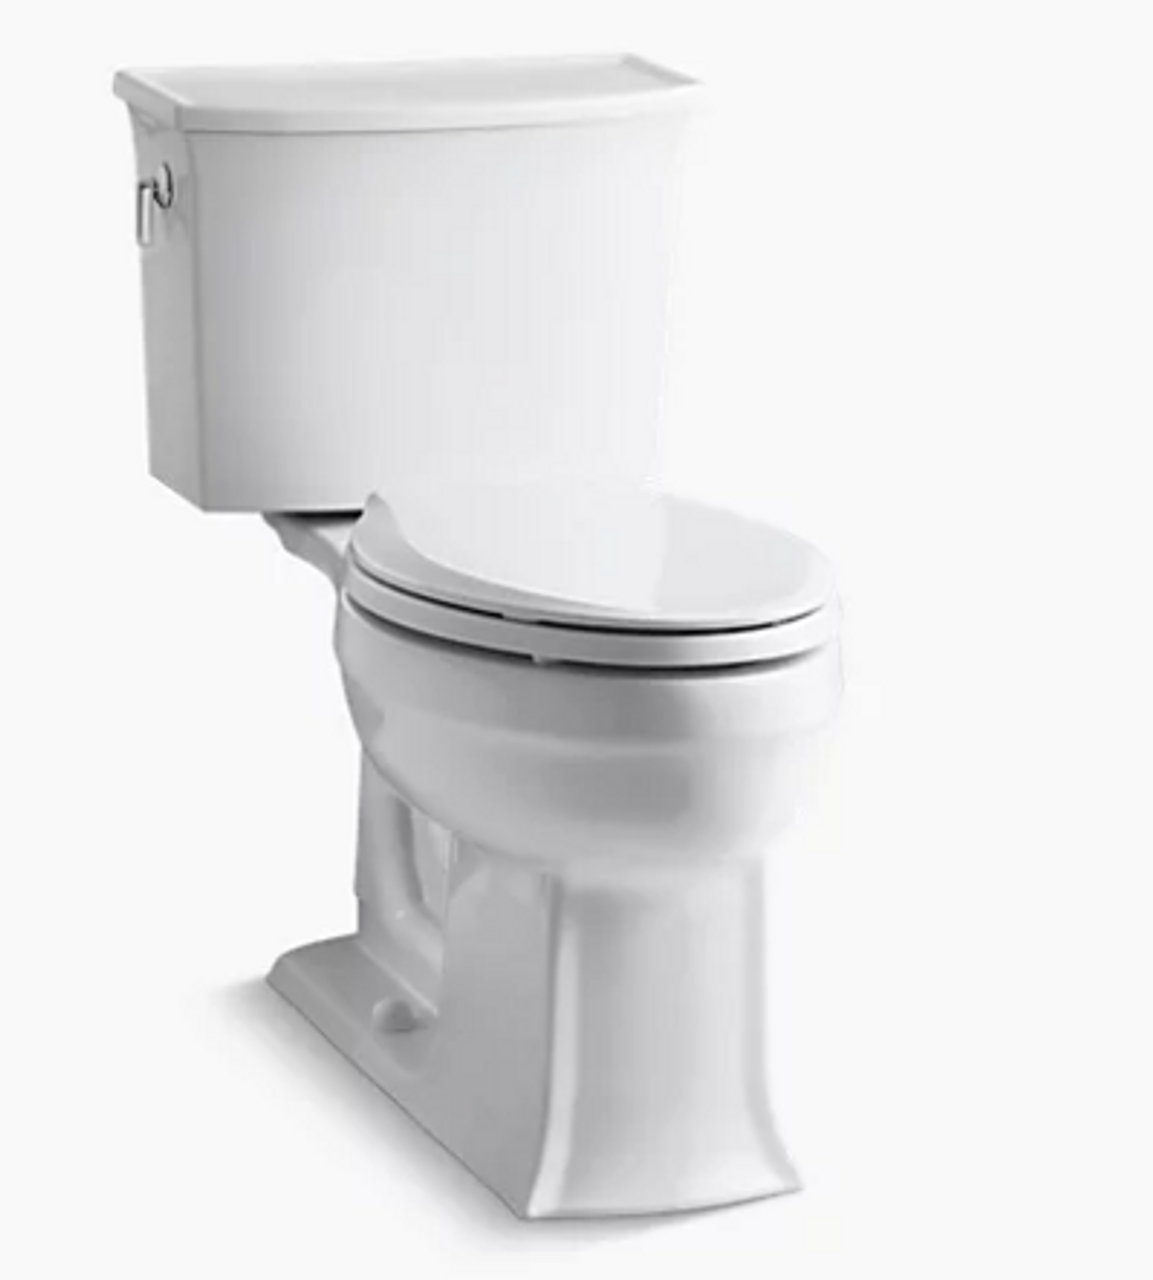 Kohler Archer Comfort Height In White Royal Bath Place